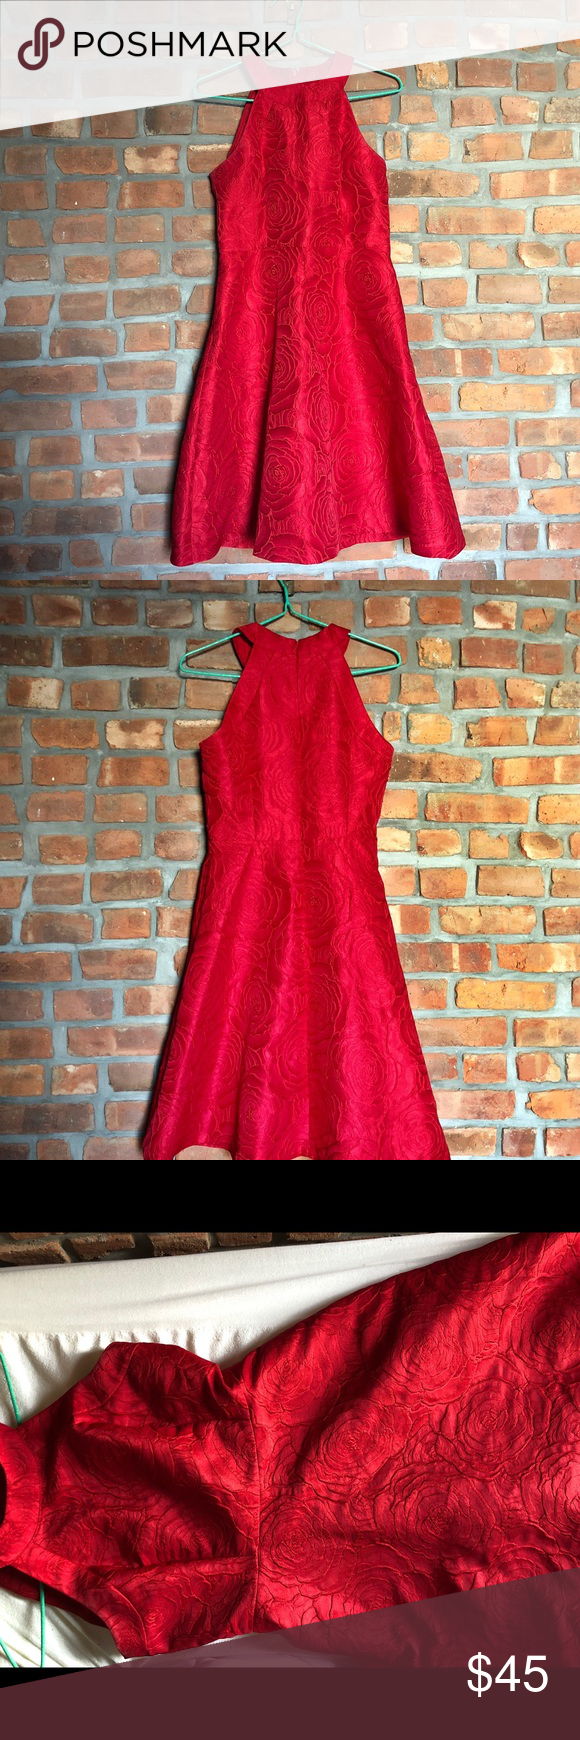 Red Calvin Kline Dress Deep true red Calvin Kline dress with rose pattern detailing  - size 4 - worn 1 time (to a wedding)  - high neck, sleeveless  - cinched just below the ribs, which makes your waist look tiny  - bottom flares nicely, hits just below the knee  - looks best with heels :)  - take to dry cleaner! Calvin Klein Dresses Wedding